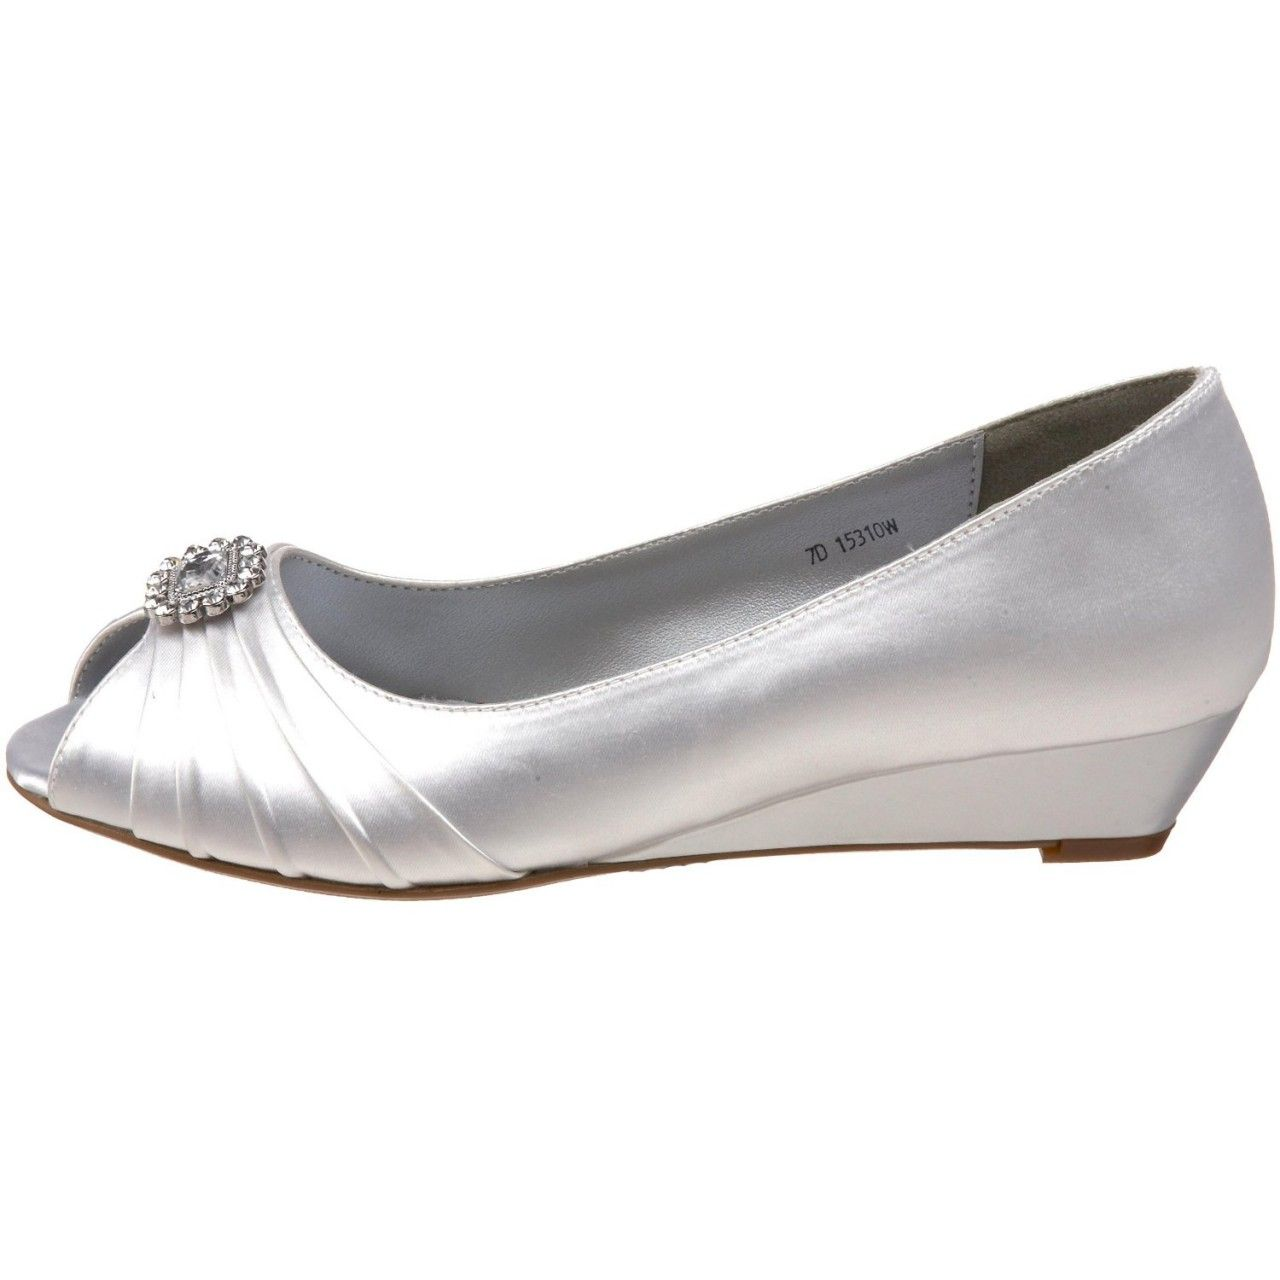 15+ Silver flats for wedding wide ideas